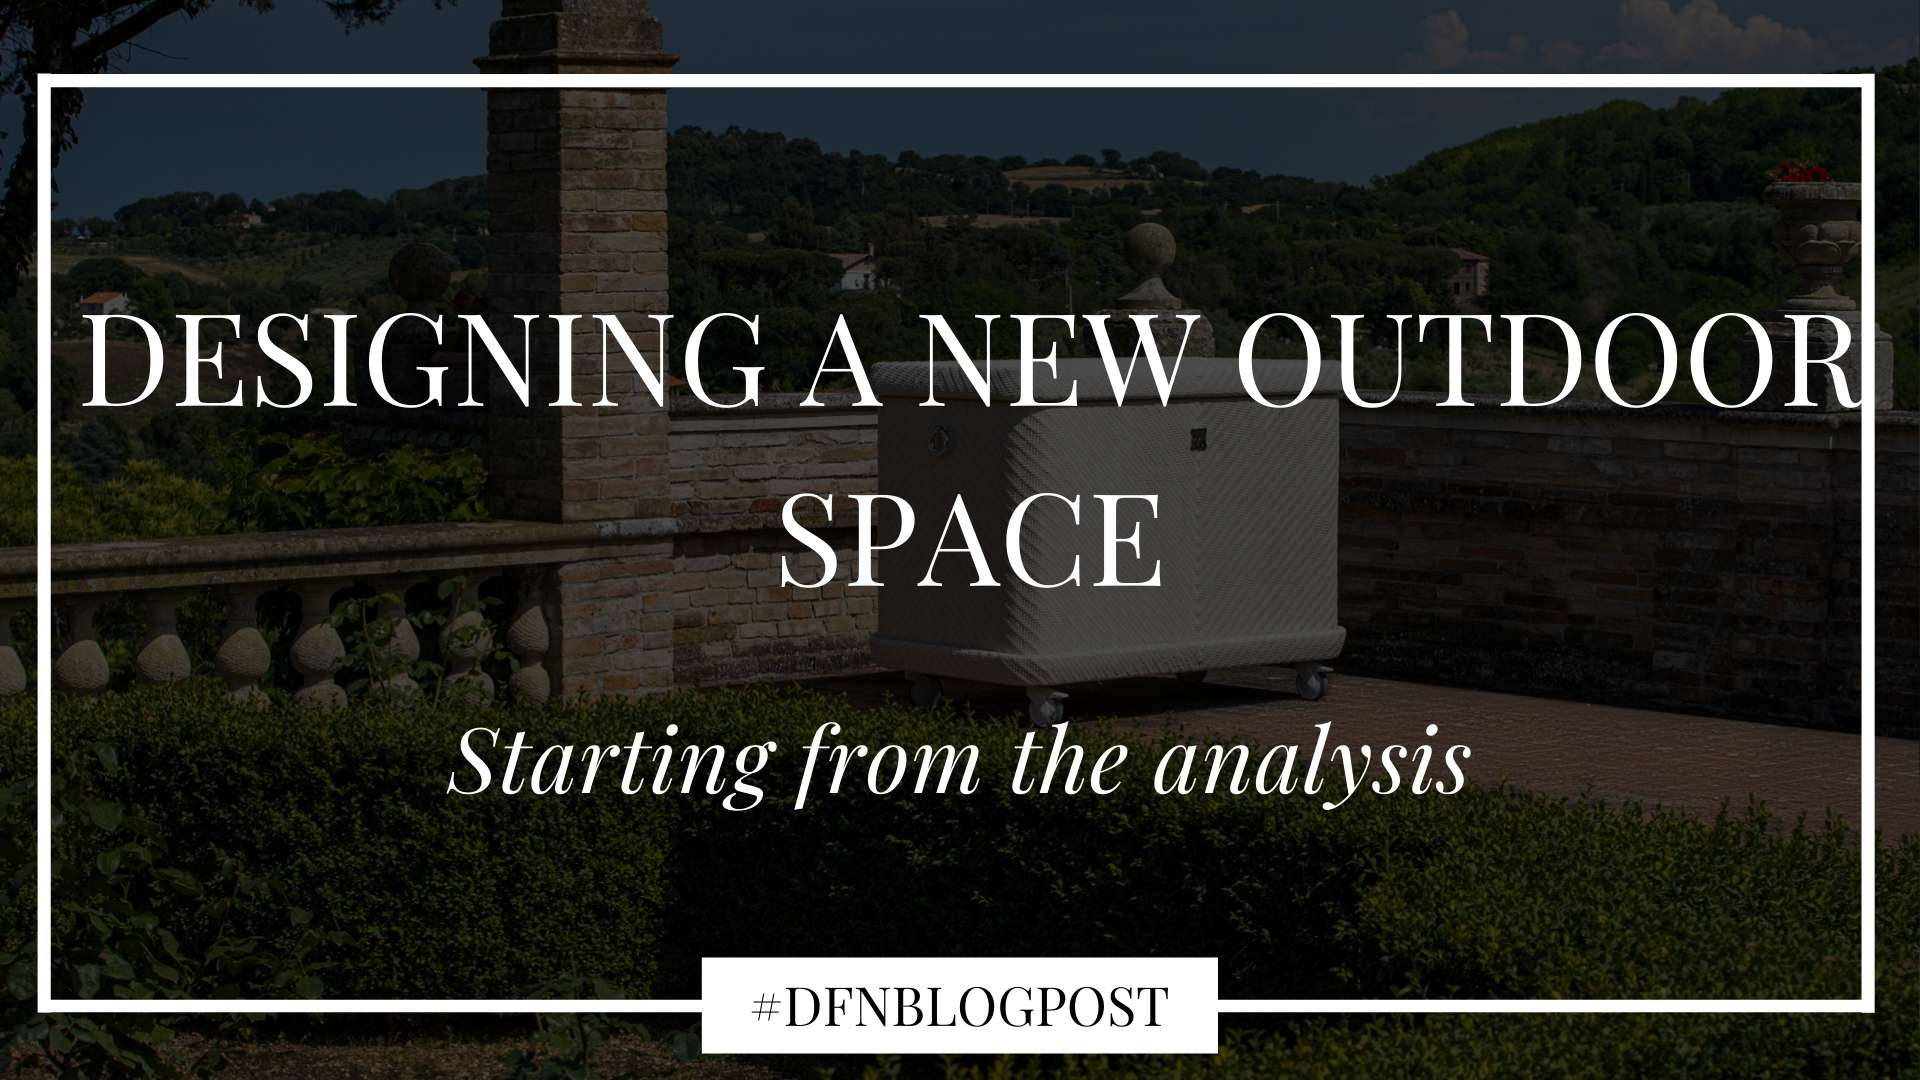 Designing a new outdoor space: starting from the analysis